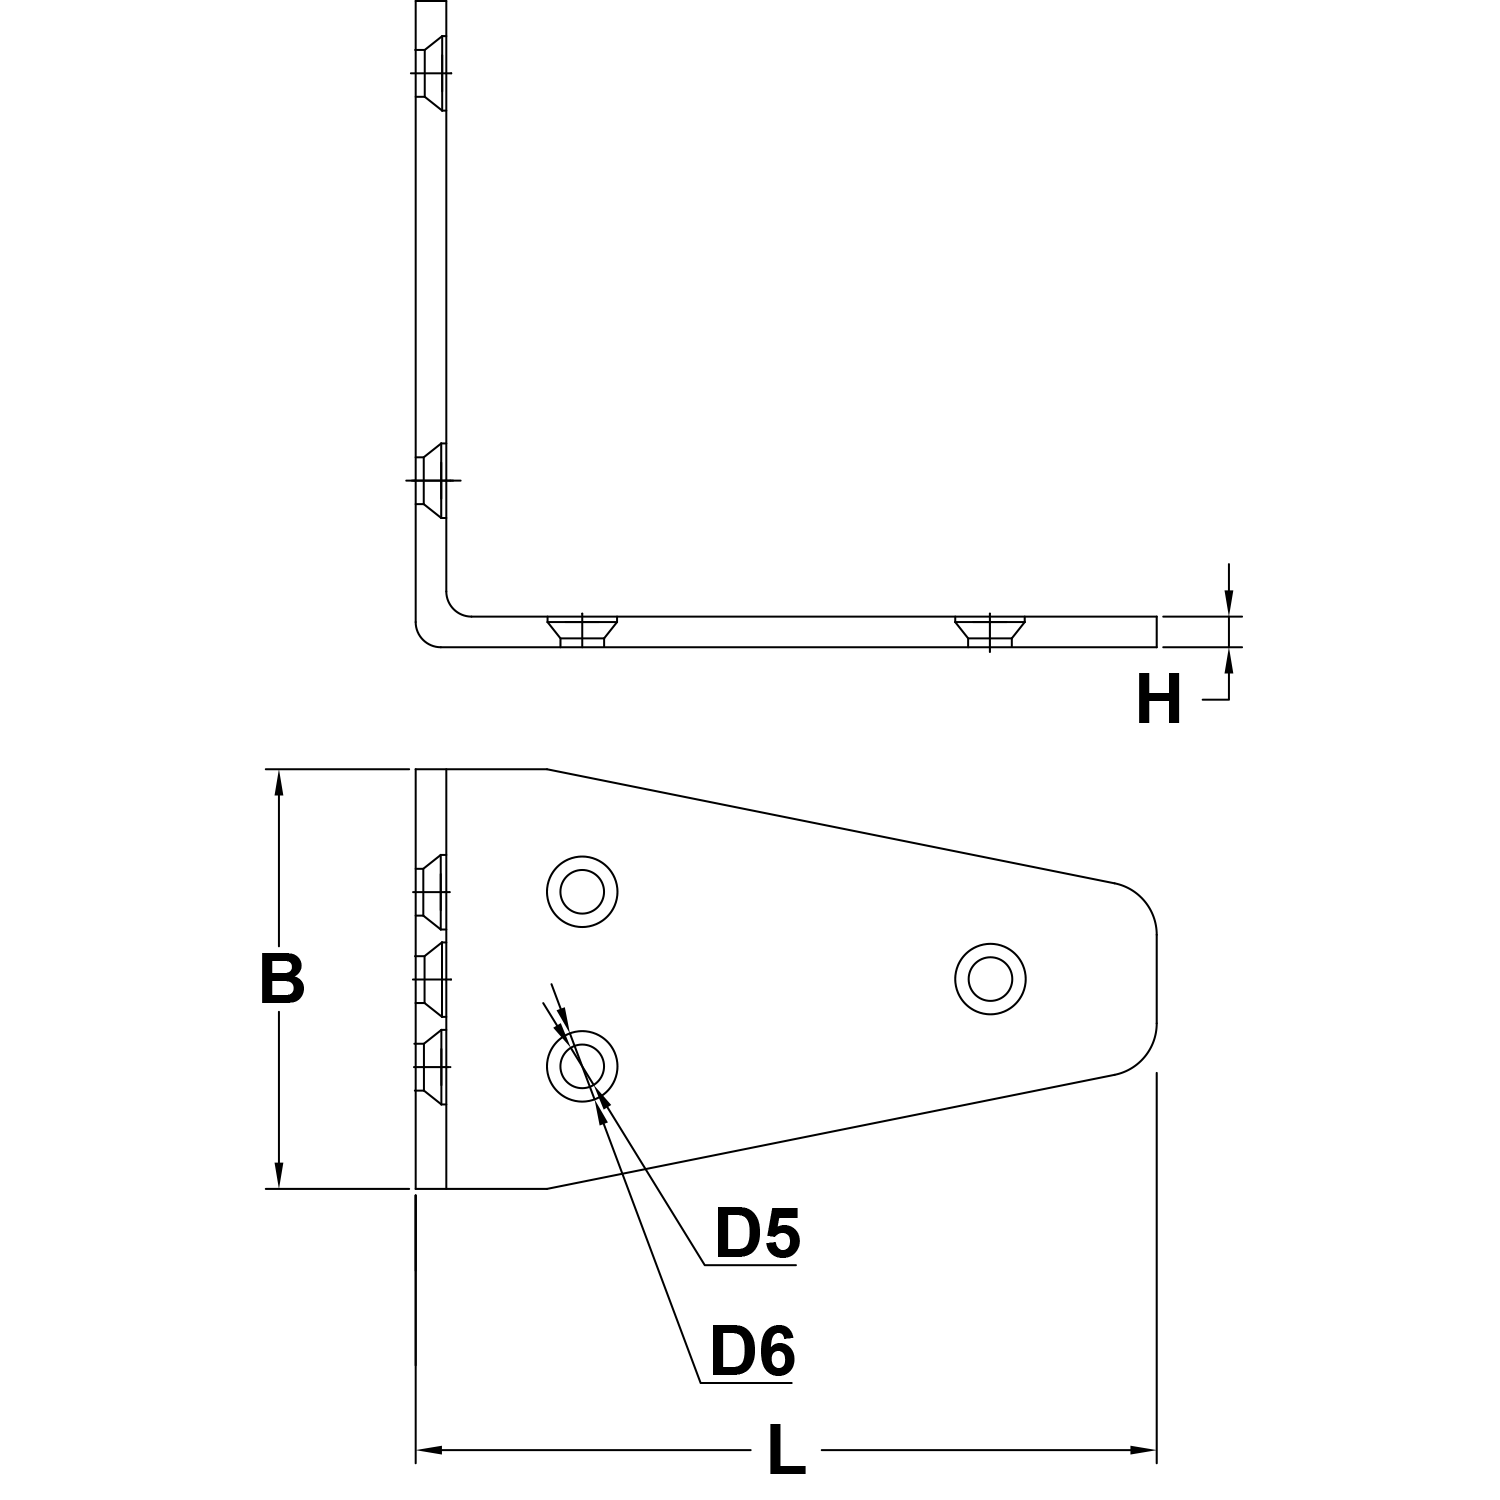 56mm-Stainless-Steel-Angle-Bracket-diagram